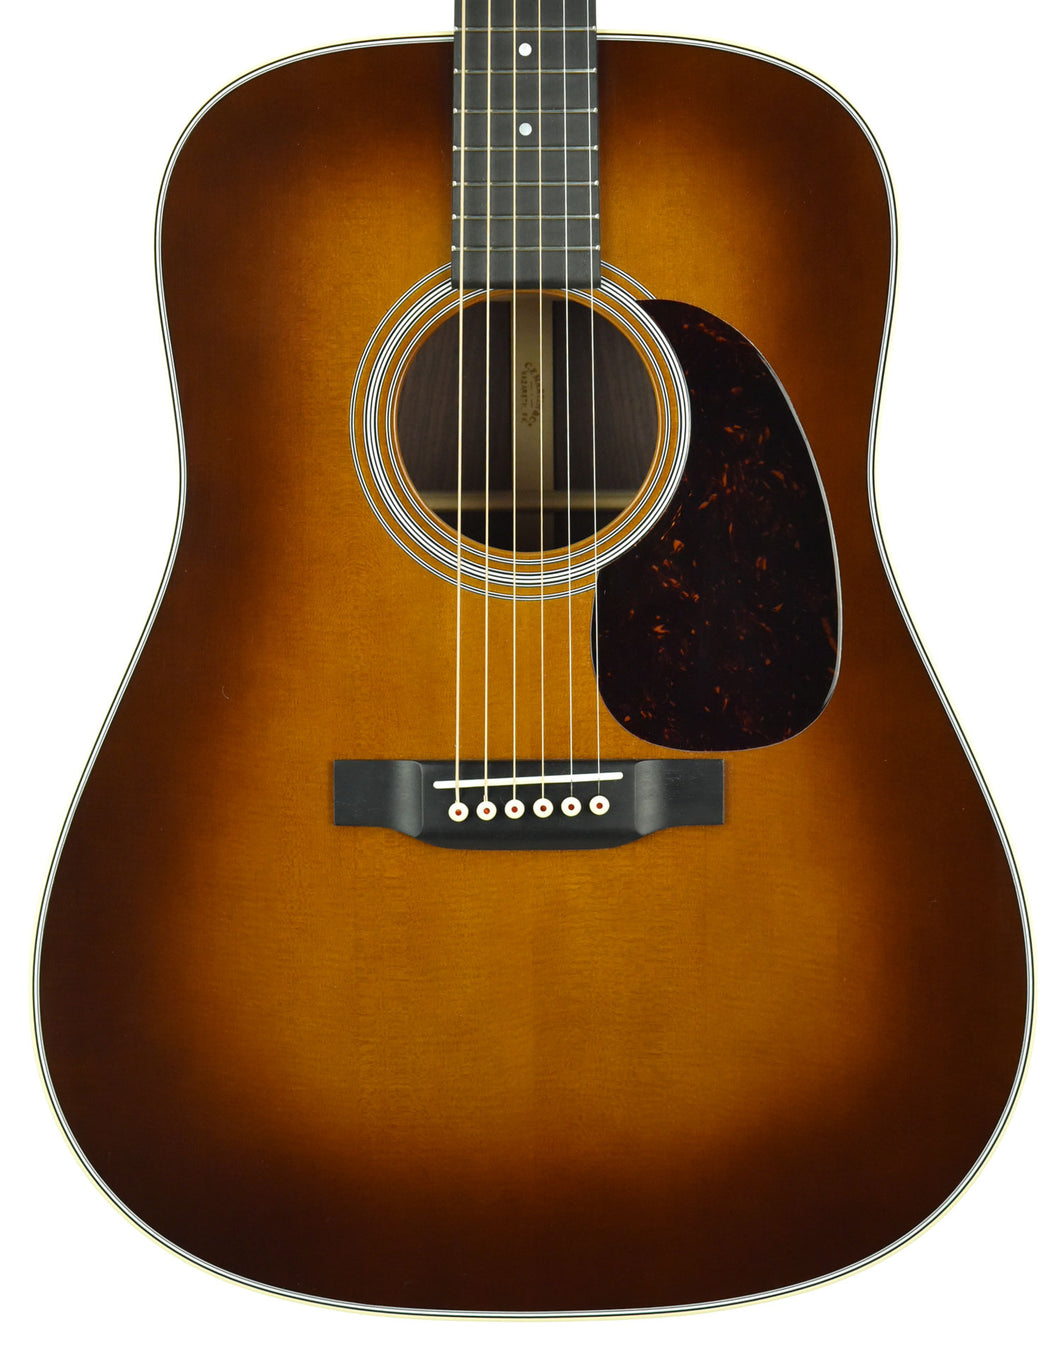 Used Martin D28 Acoustic Guitar in Ambertone 2176998 - The Music Gallery